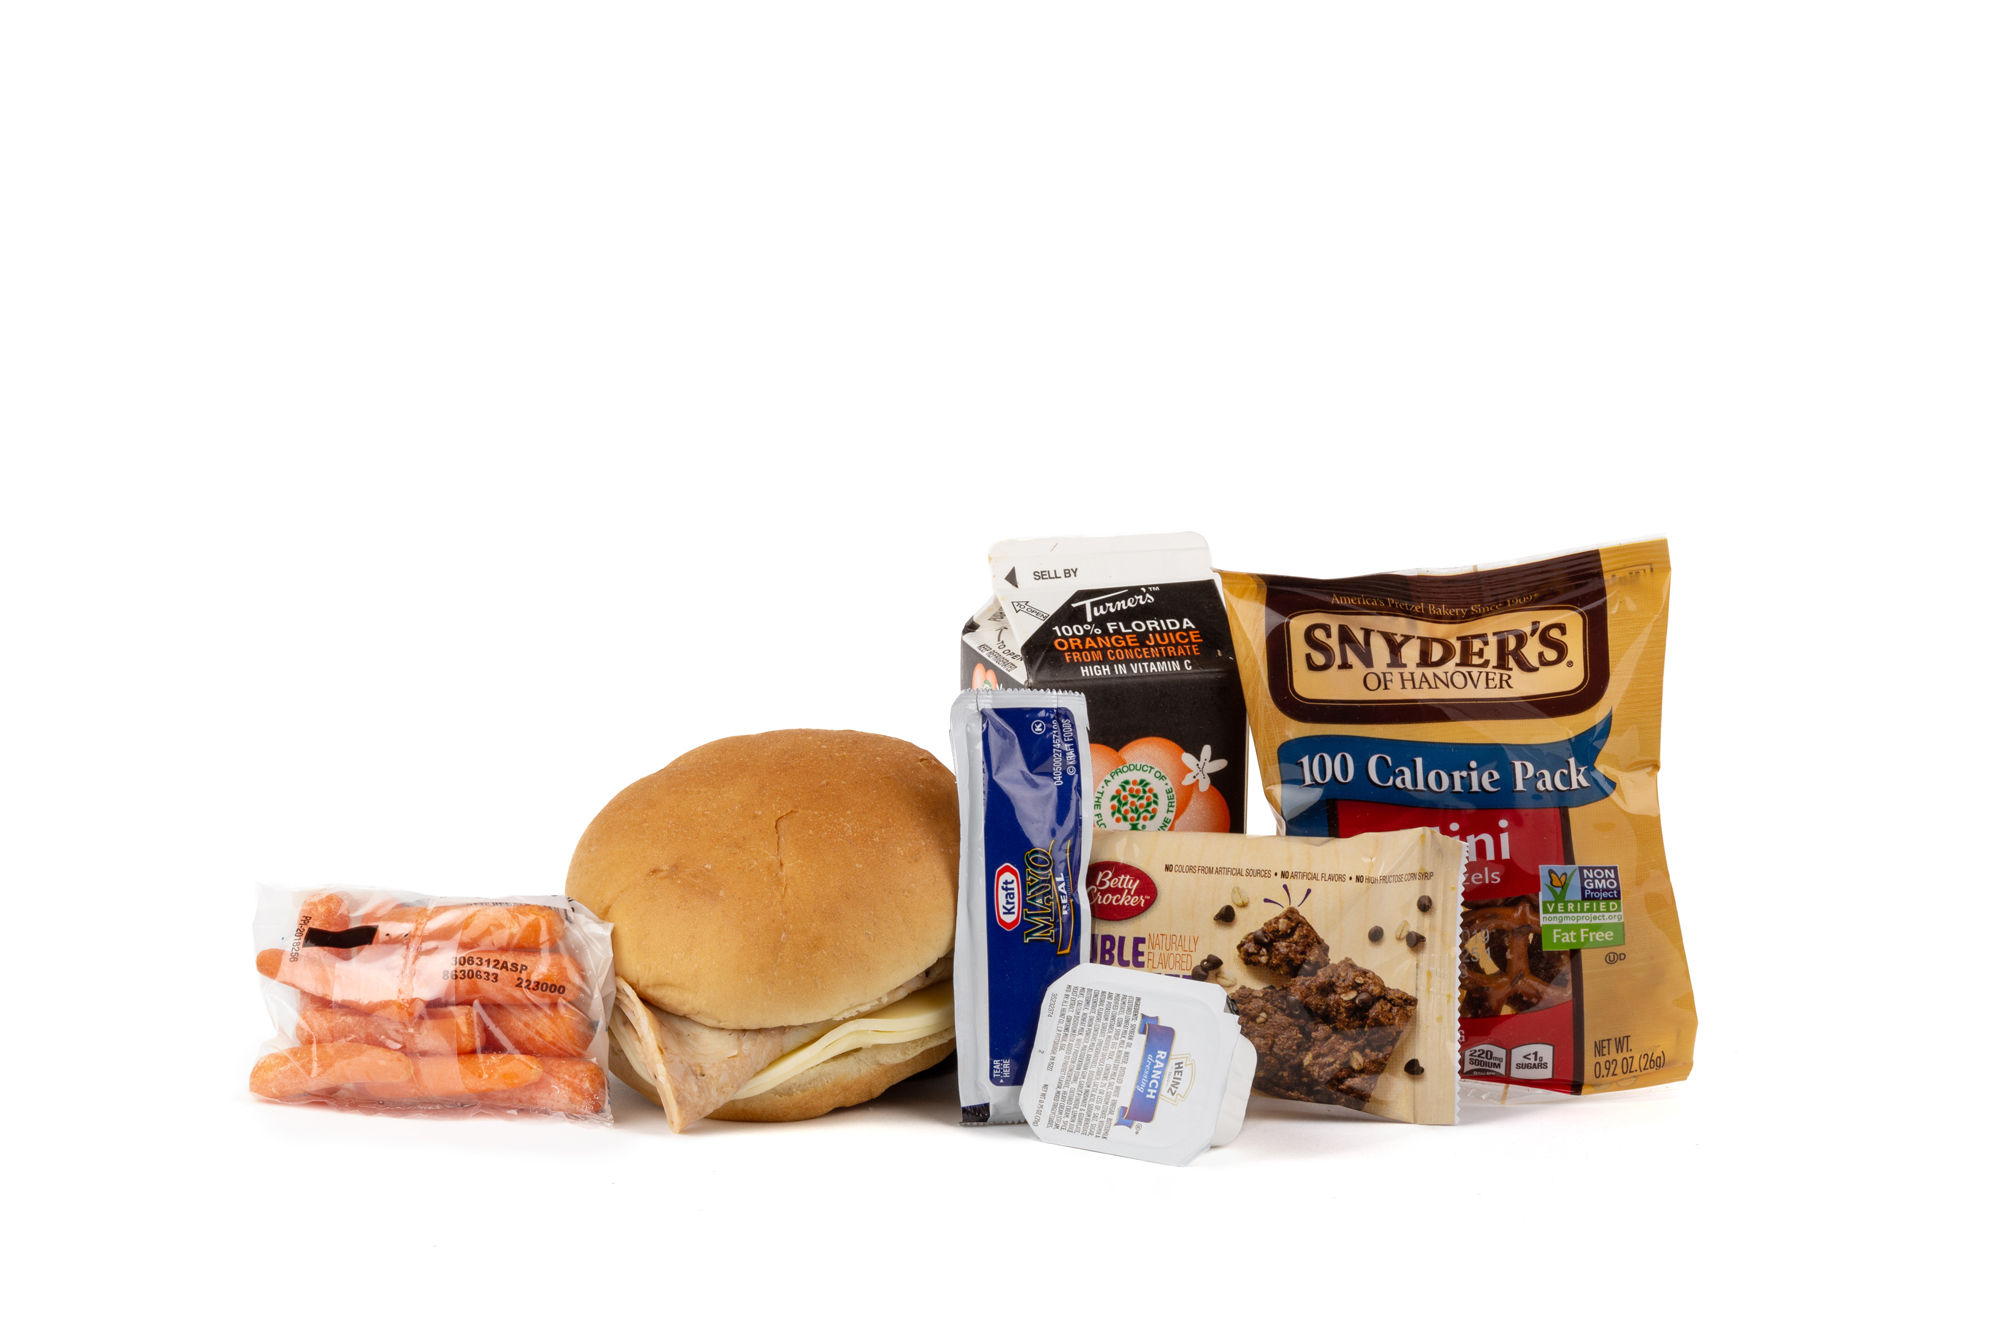 MK01 - Fresh Chicken Rotisserie  Rotisserie Chicken/ Provolone Cheese on Bun Fresh Baby Carrots Ranch Dressing Cup Mayonnaise Packet Pretzels Double Chocolate Oatmeal Bar Orange Juice